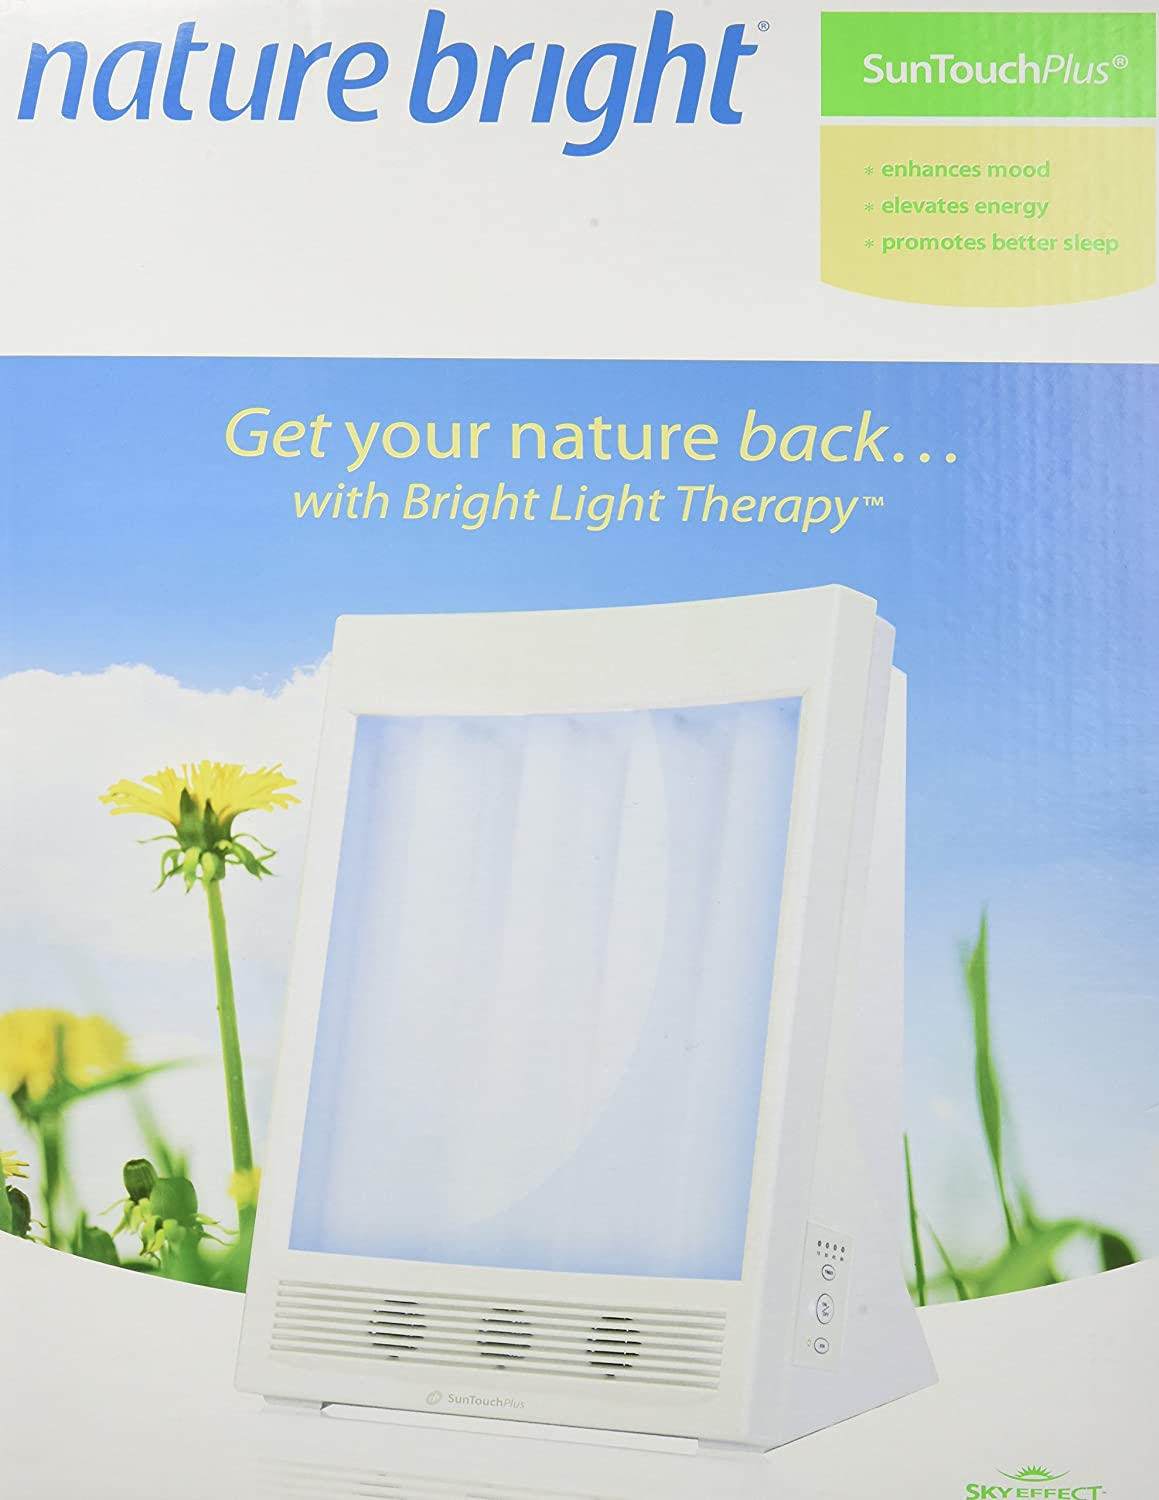 Naturebright Suntouch Plus Light And Ion Therapy Lamp Where A Potato Or Several Can Be Used To Power Clock Package May Vary Health Personal Care